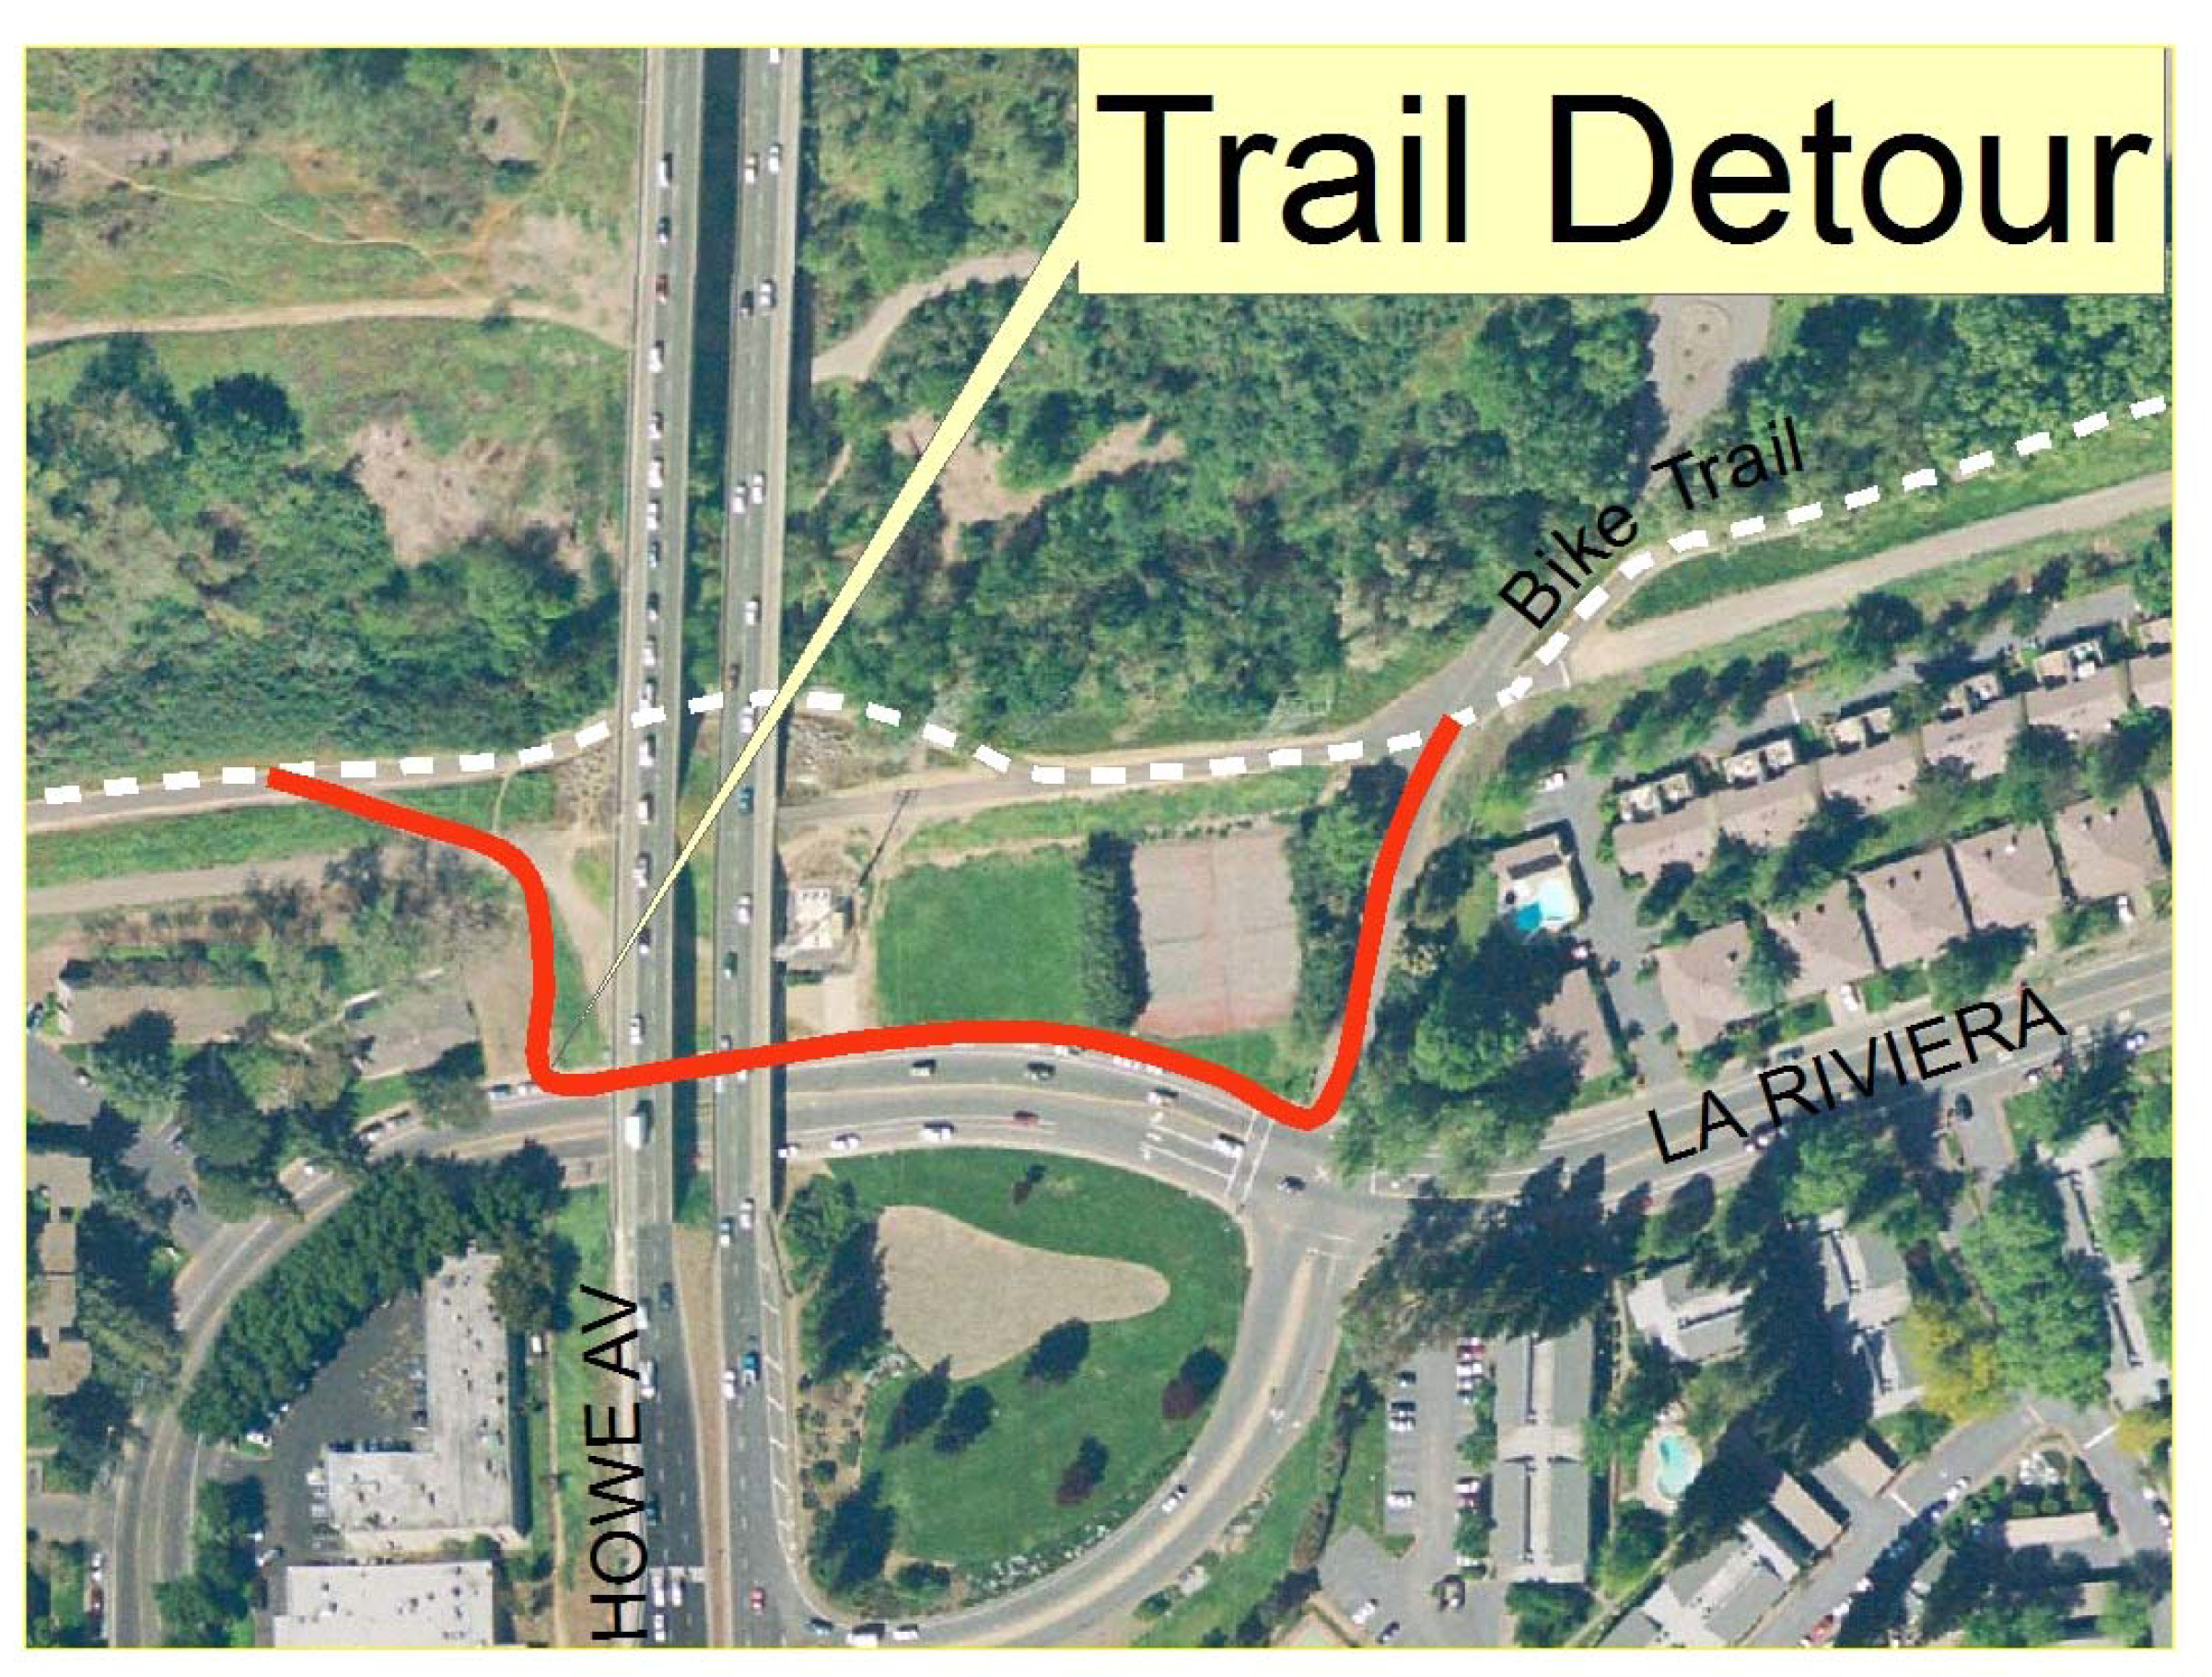 South Howe detour (Image courtesy Army Corps of Engineers)